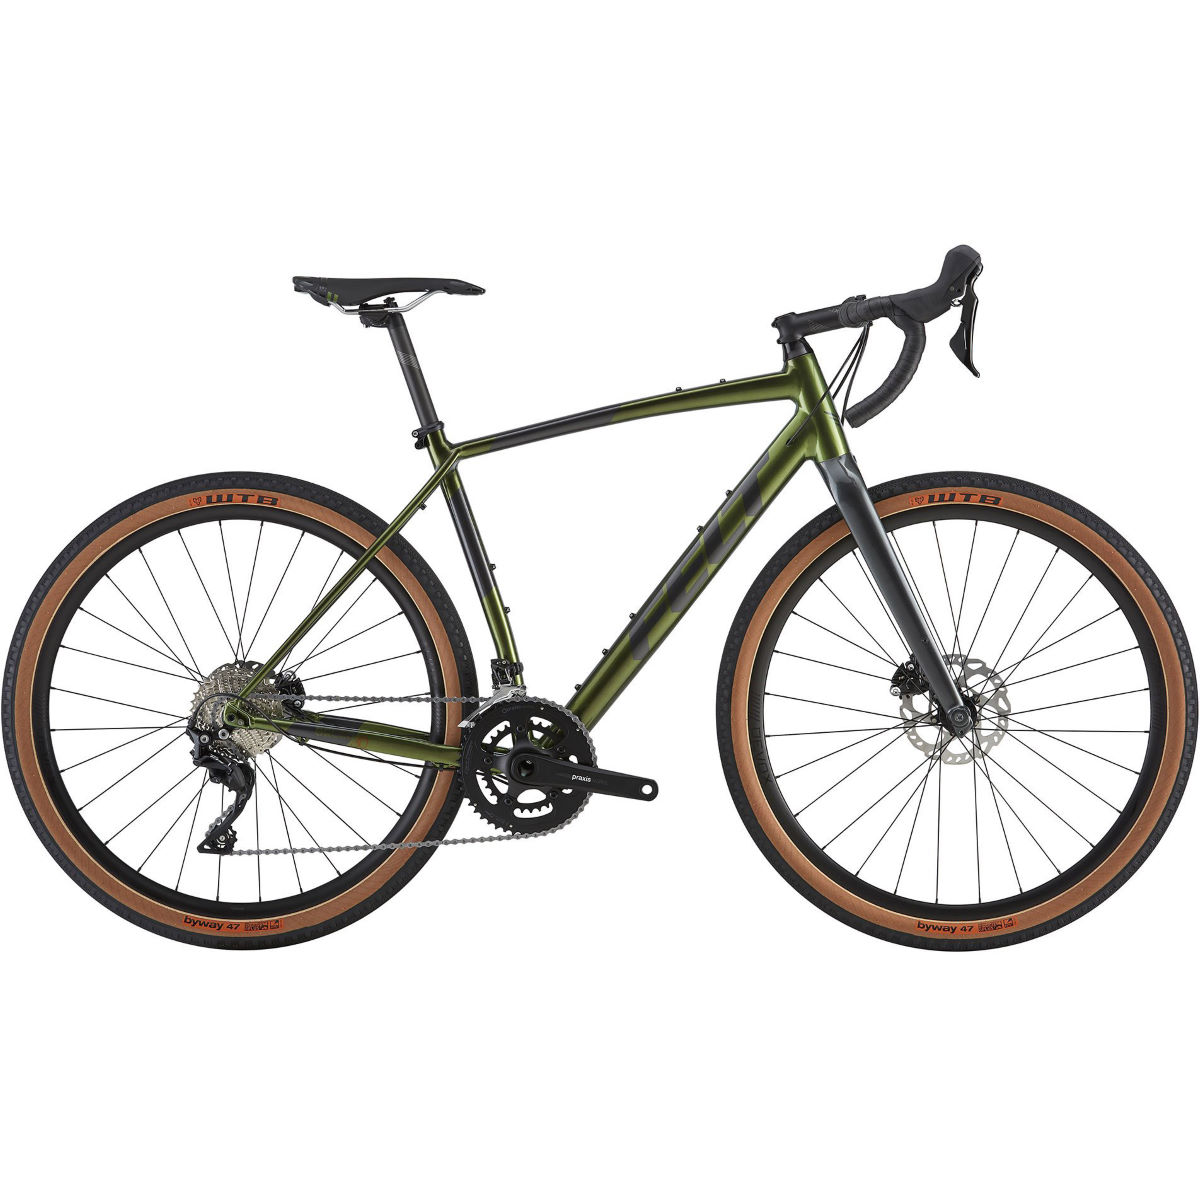 Image of Vélo de route Felt Breed 30 (aventure, 2019) - 58cm Green Metallic